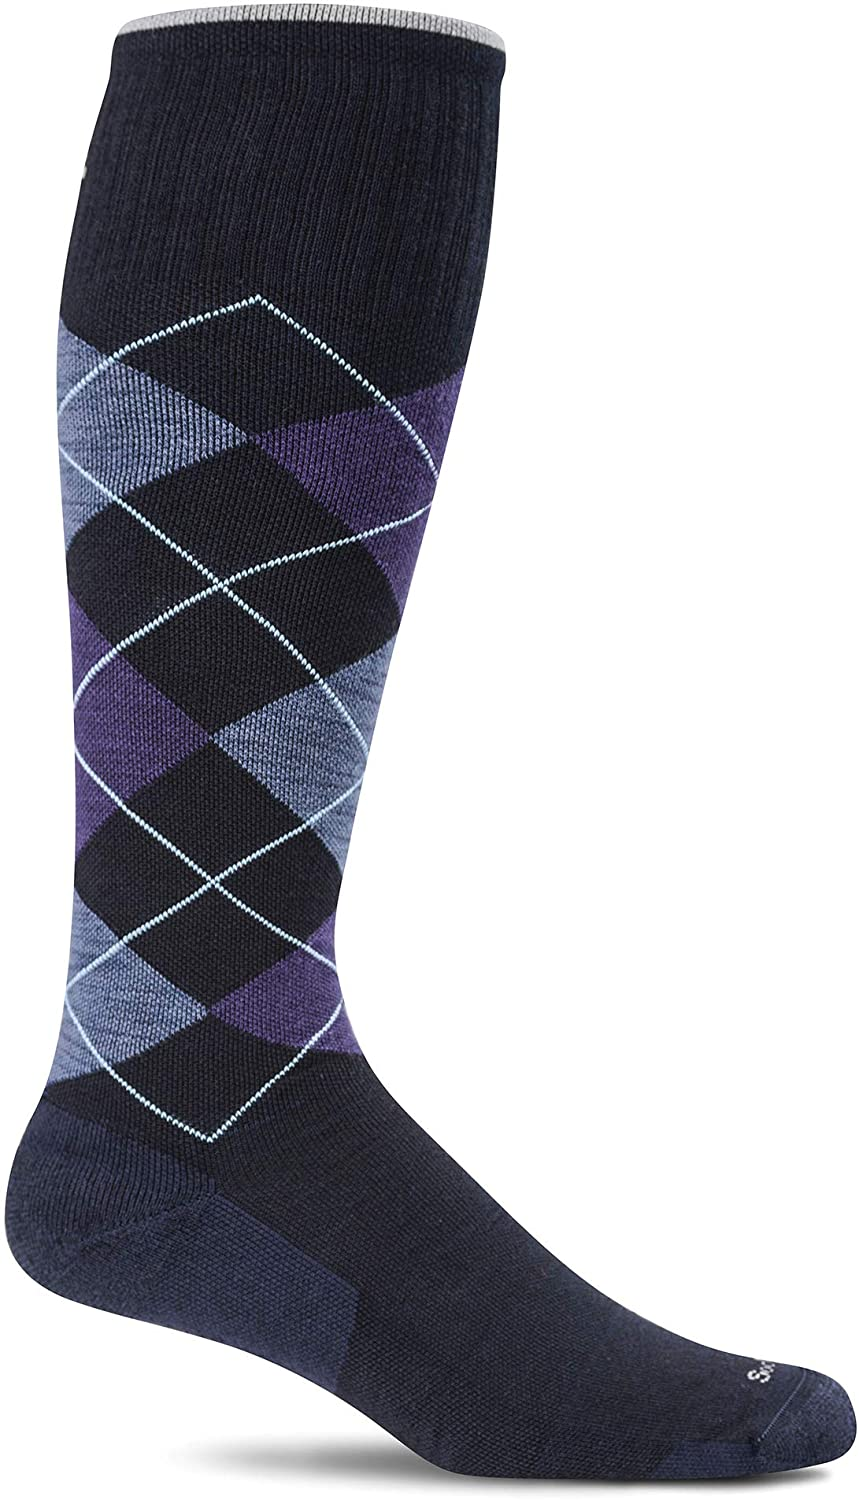 Sockwell Men's Argyle Circulator Moderate Graduated Compression Sock in Navy from the side